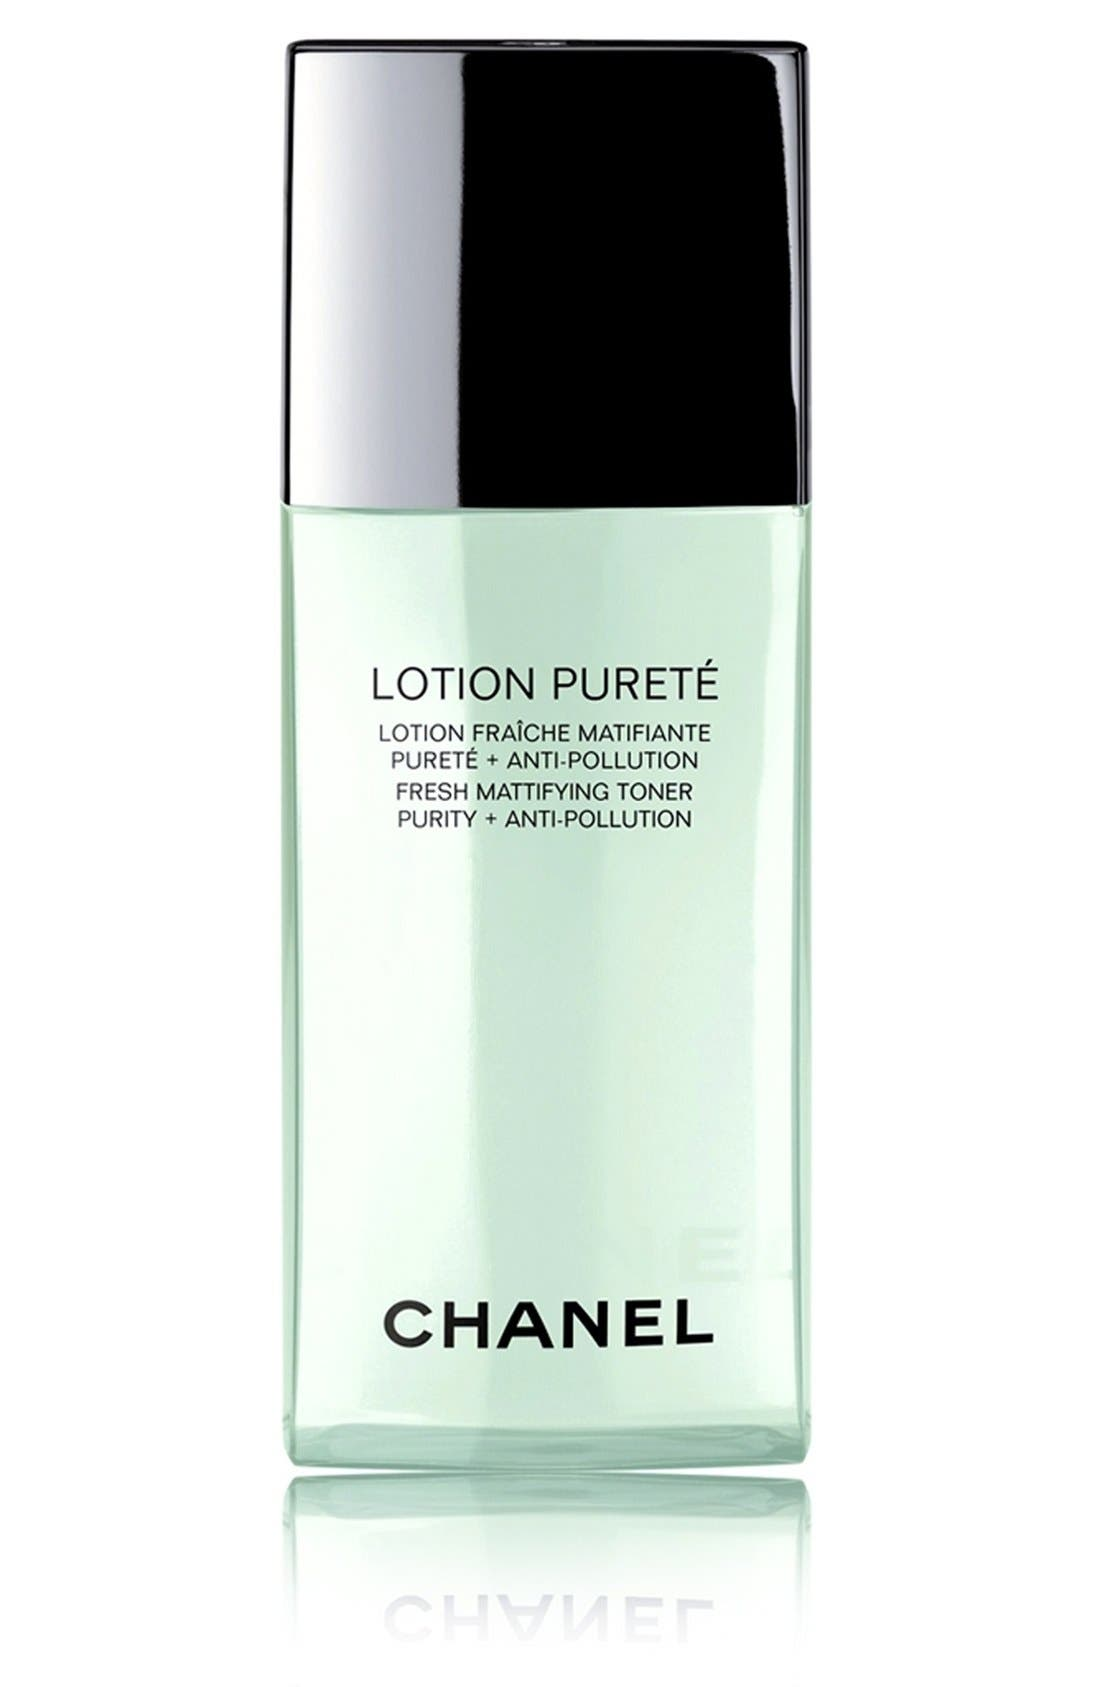 CHANEL LOTION PURETÉ 